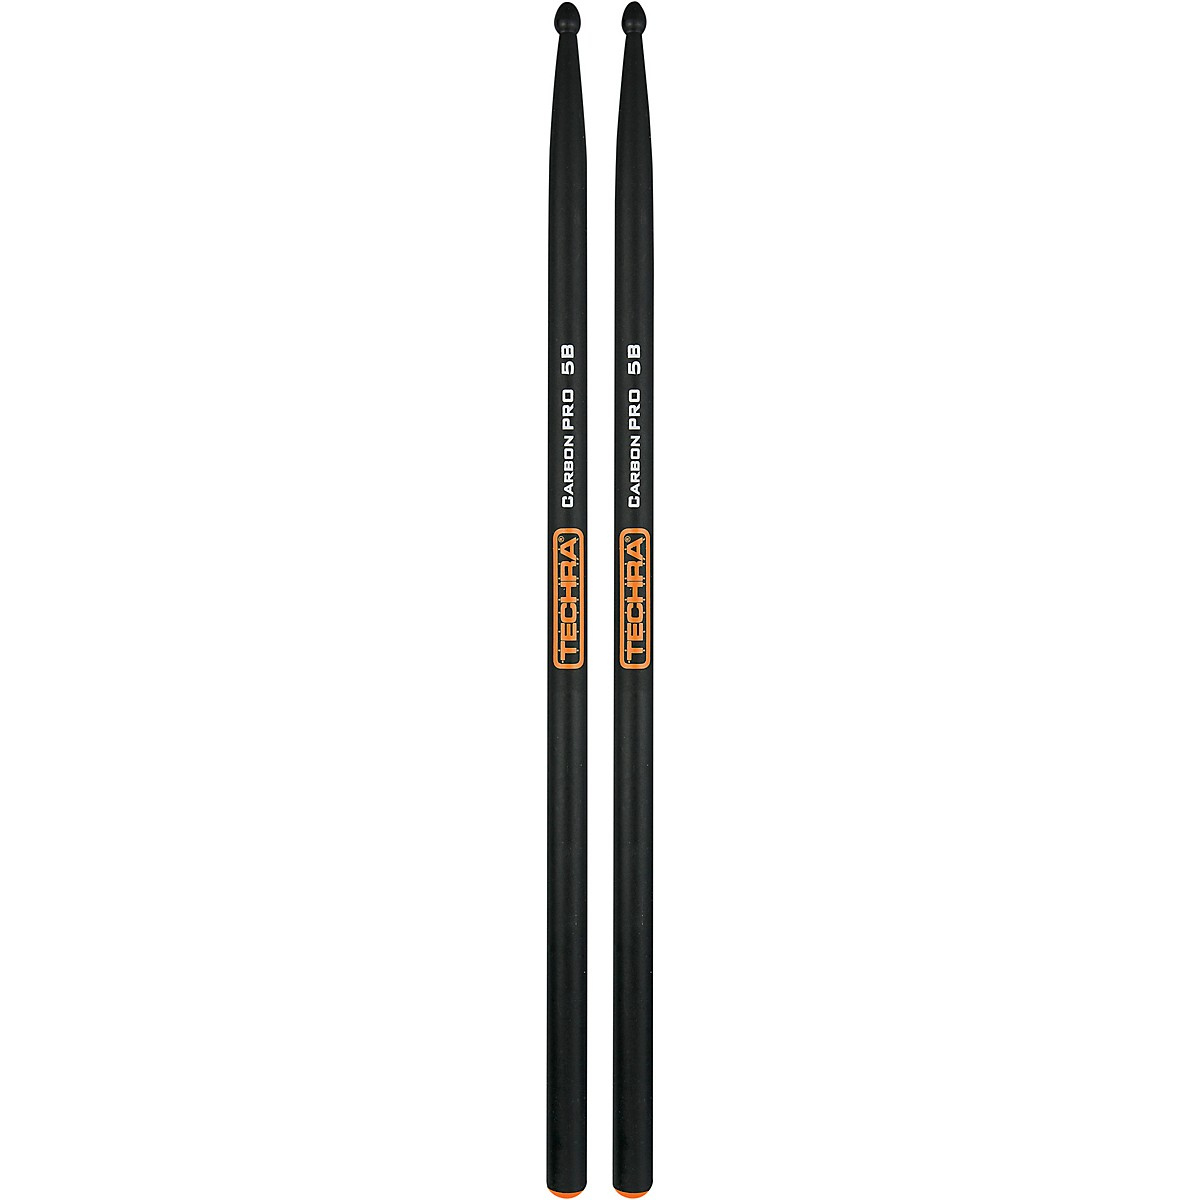 TECHRA Carbon Pro Drum Sticks